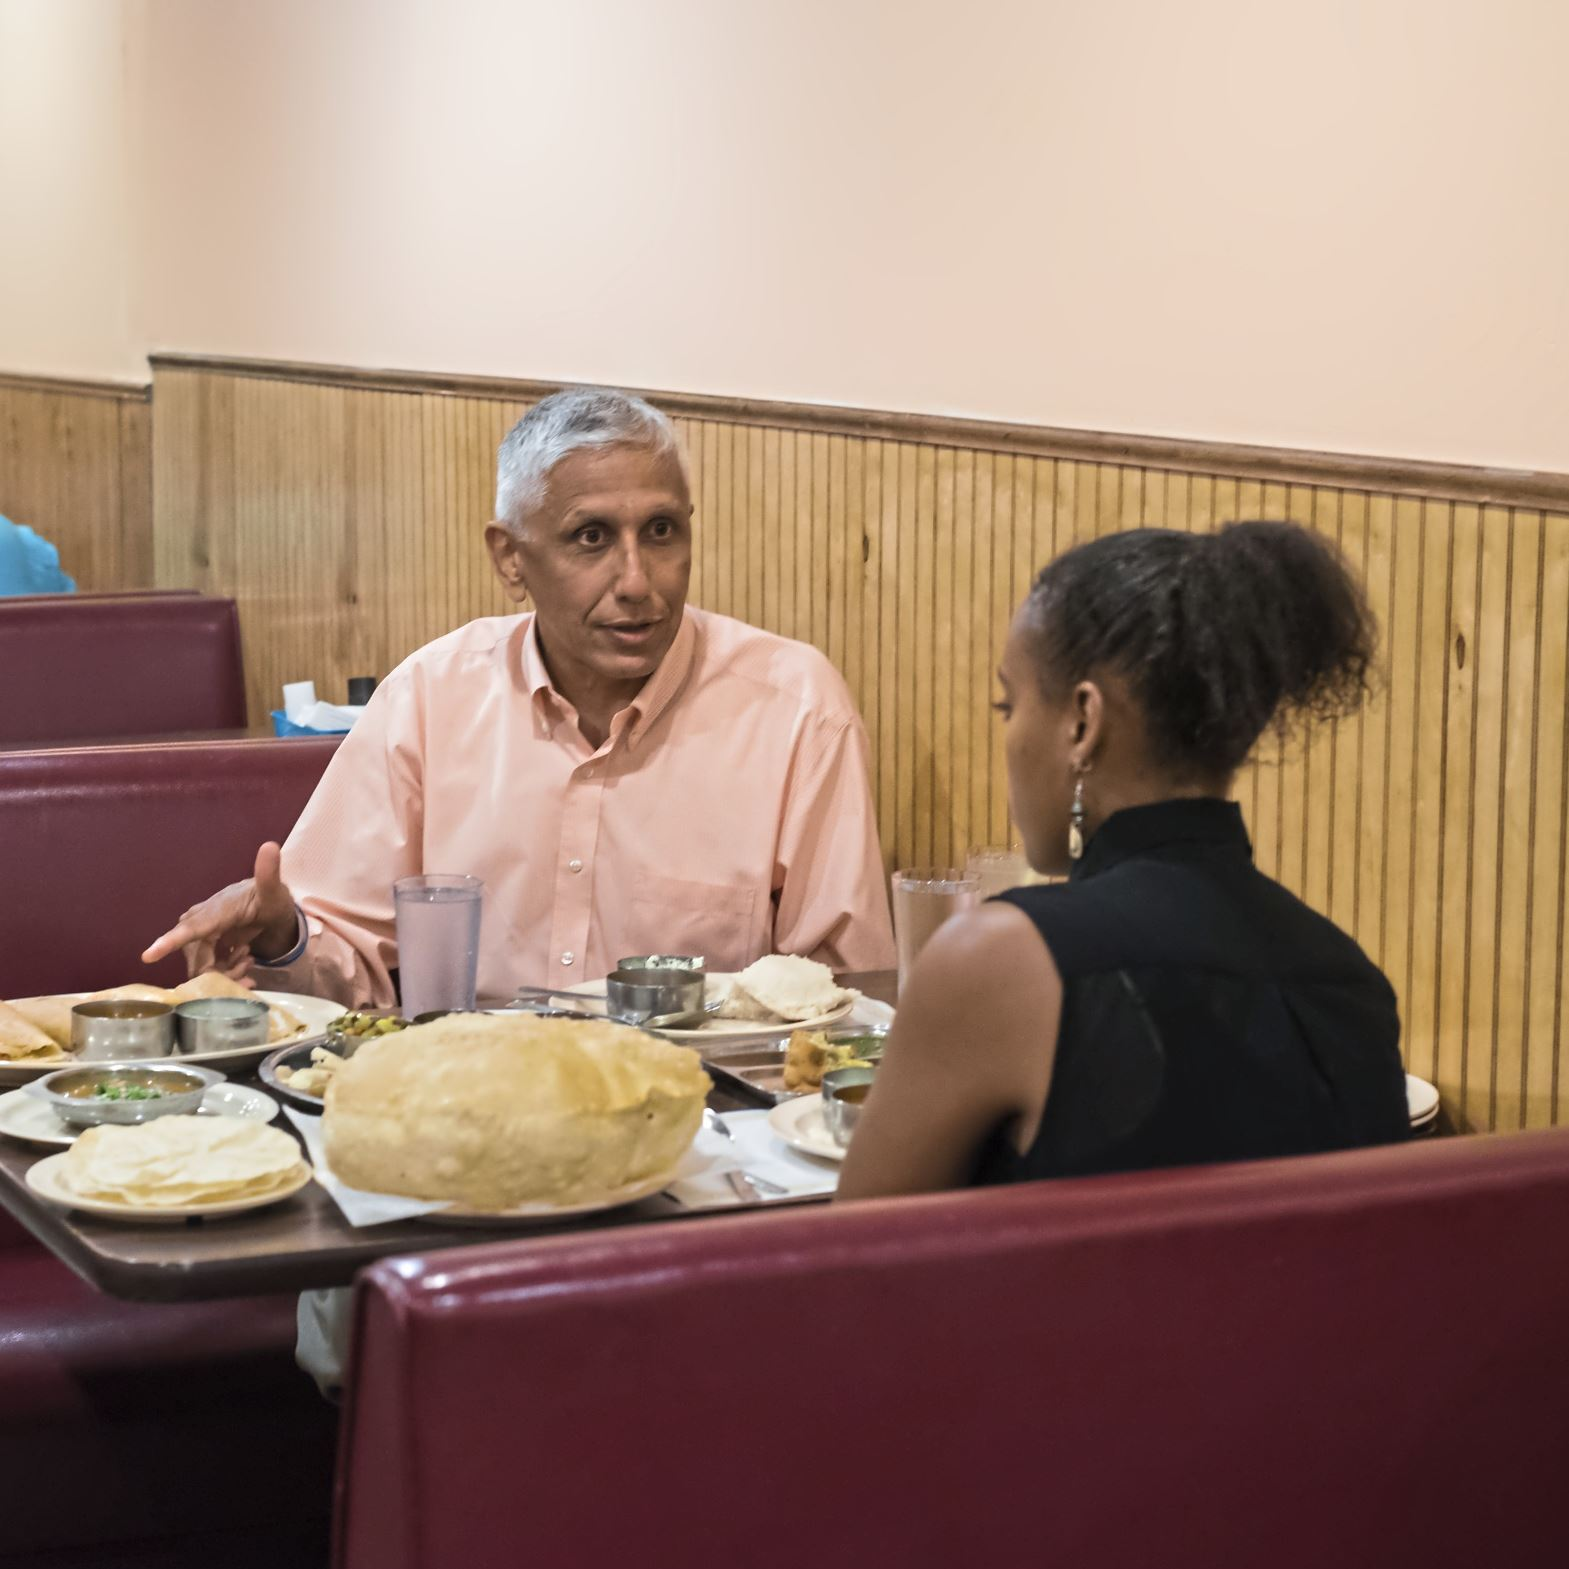 20170719smsEatWithHands09-8 Ganesh Viswanathan of Upper St. Clair talks to writer Fitale Wari about eating food with the hand.